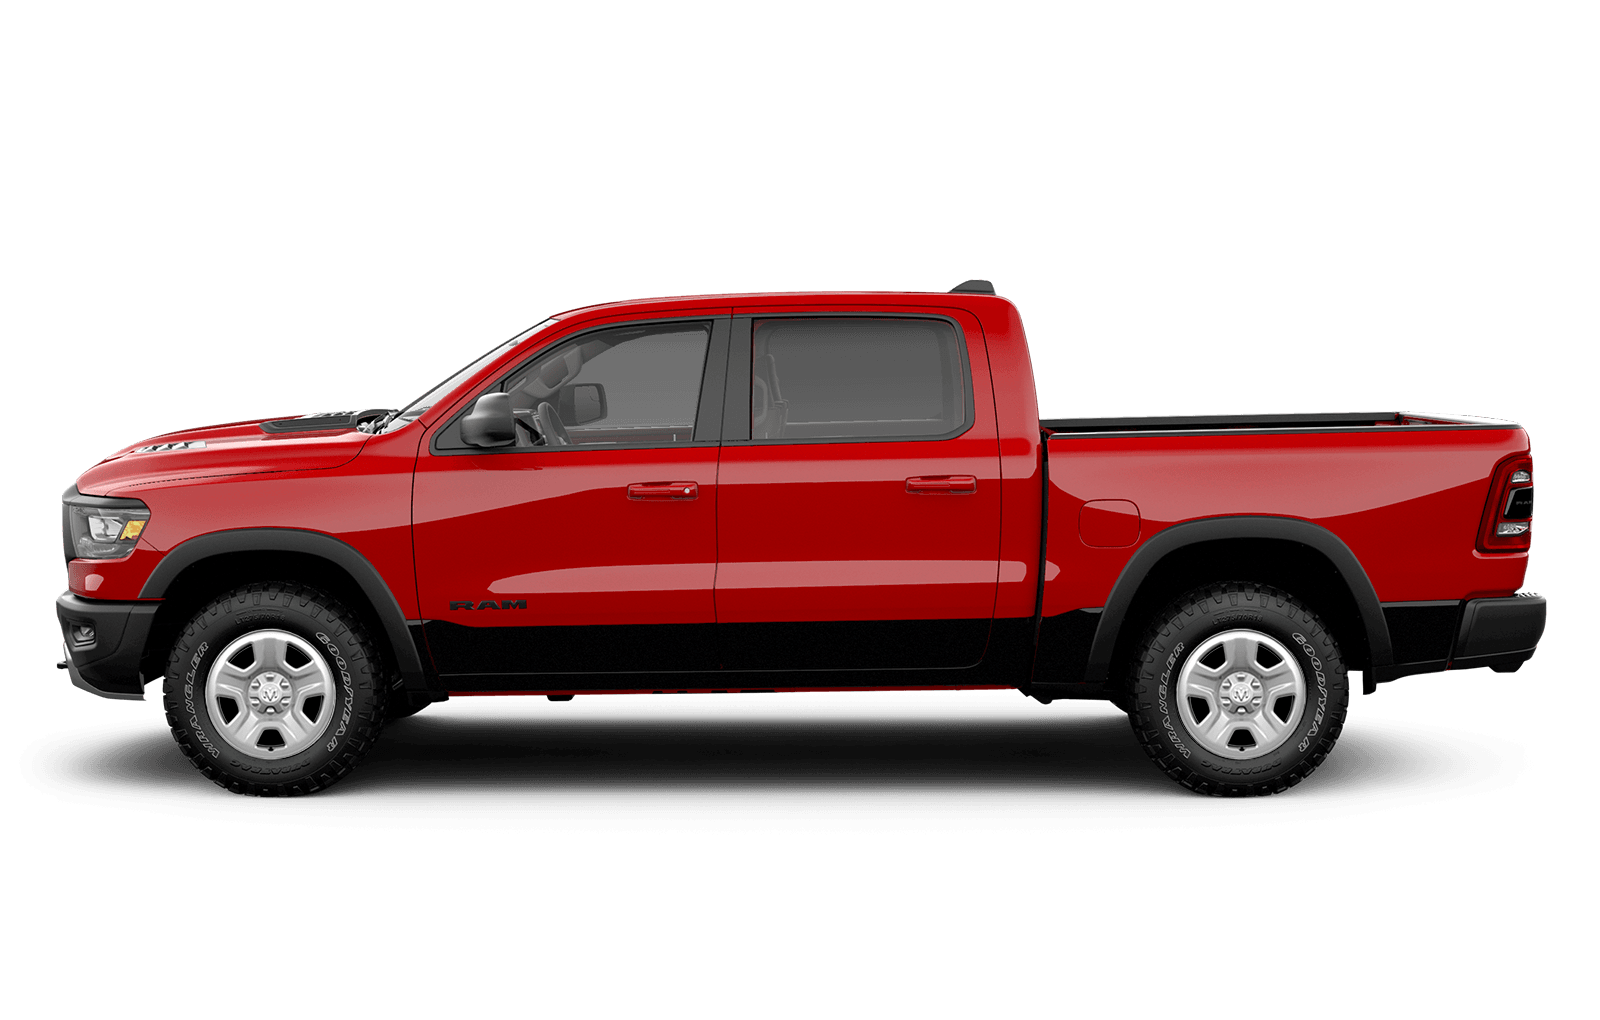 2019 Ram 1500 17inch steel wheels on red truck